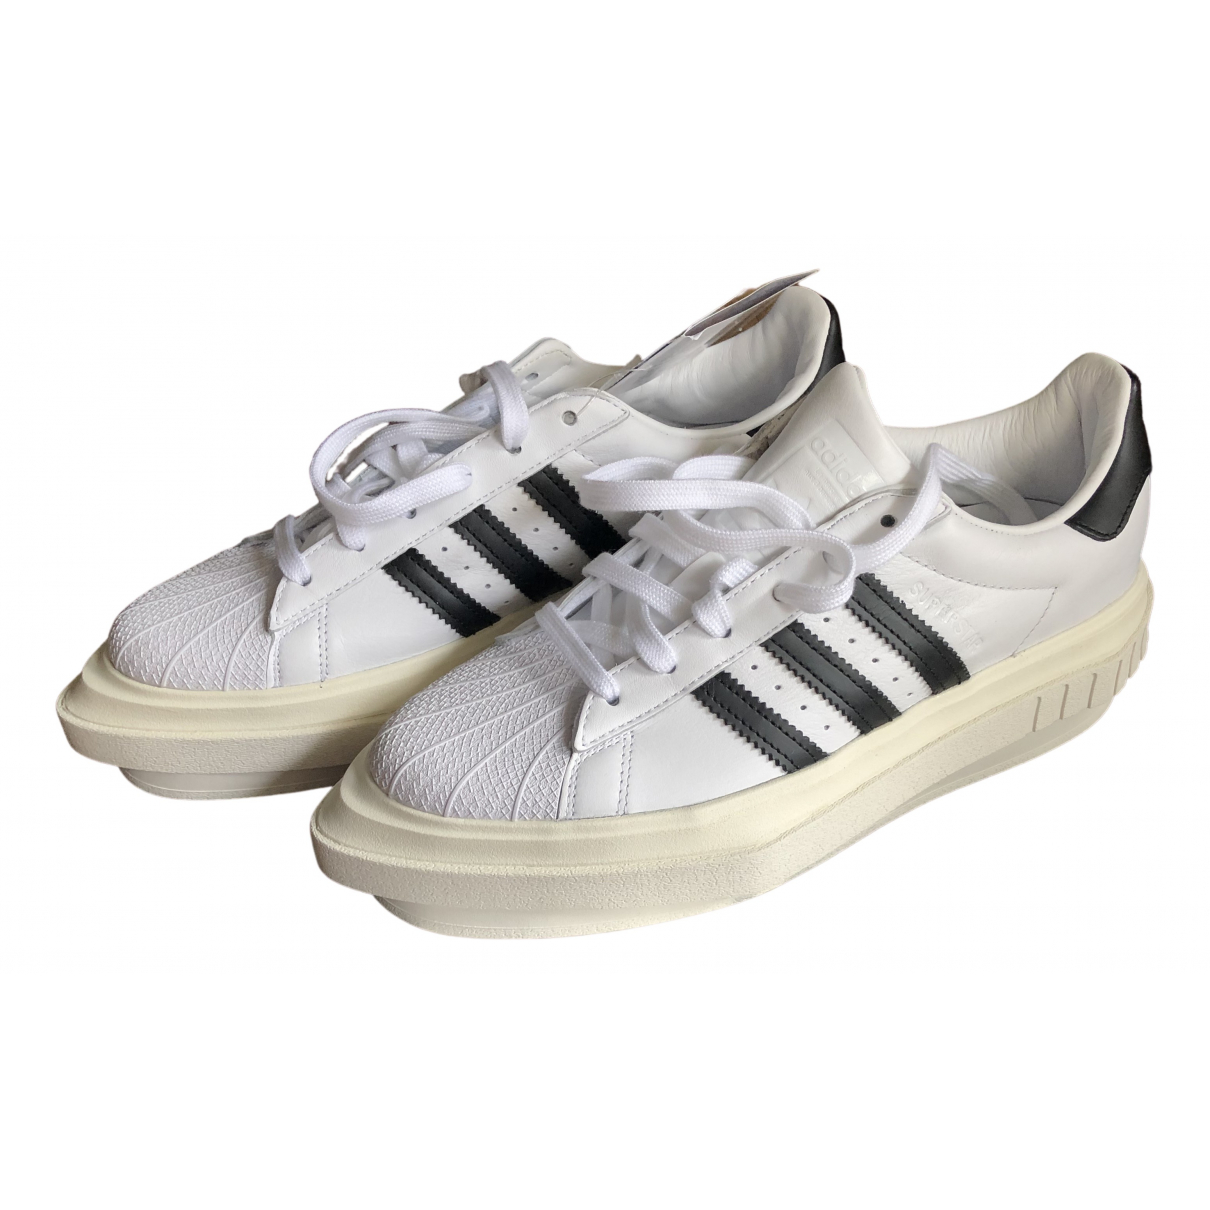 Adidas Superstar White Leather Trainers for Women 42.5 EU